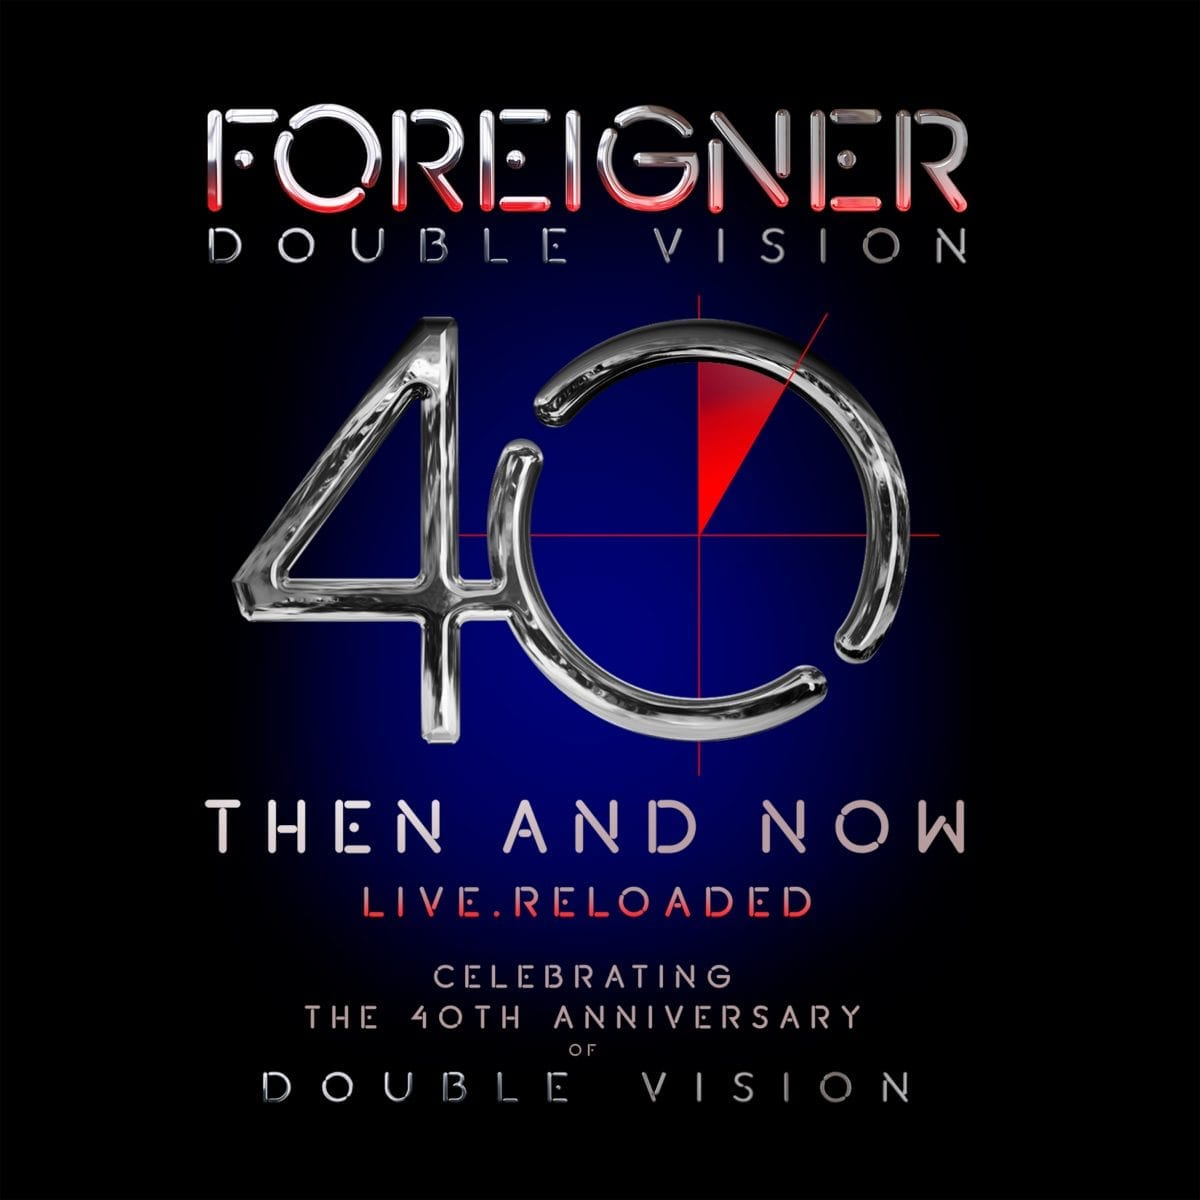 Foreigner Double Vision 40